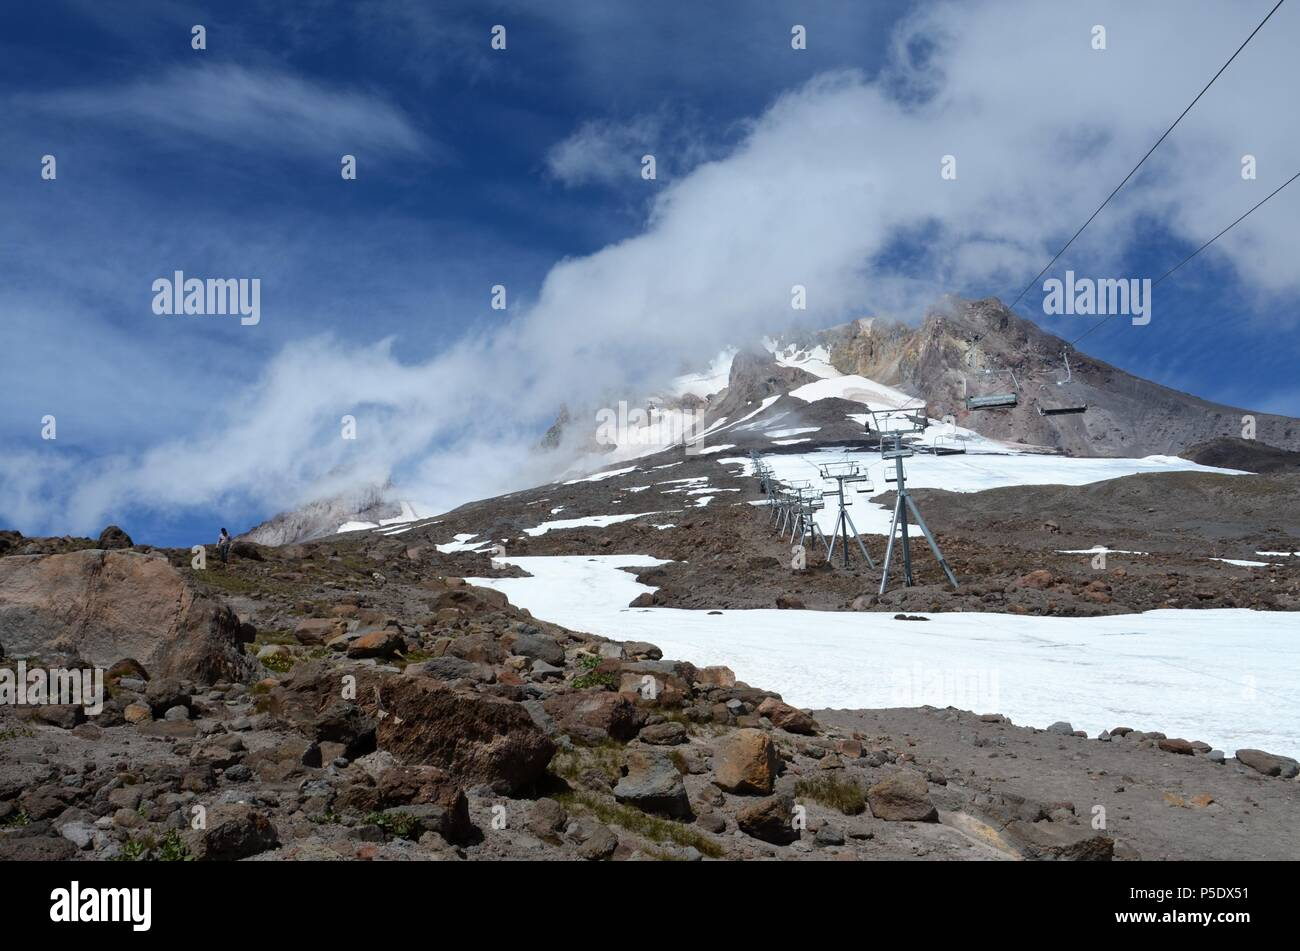 Mt. Hood in Oregon in August, with the chairlift that provides access to the  snowfield providing the longest ski season in the United States - Stock Image